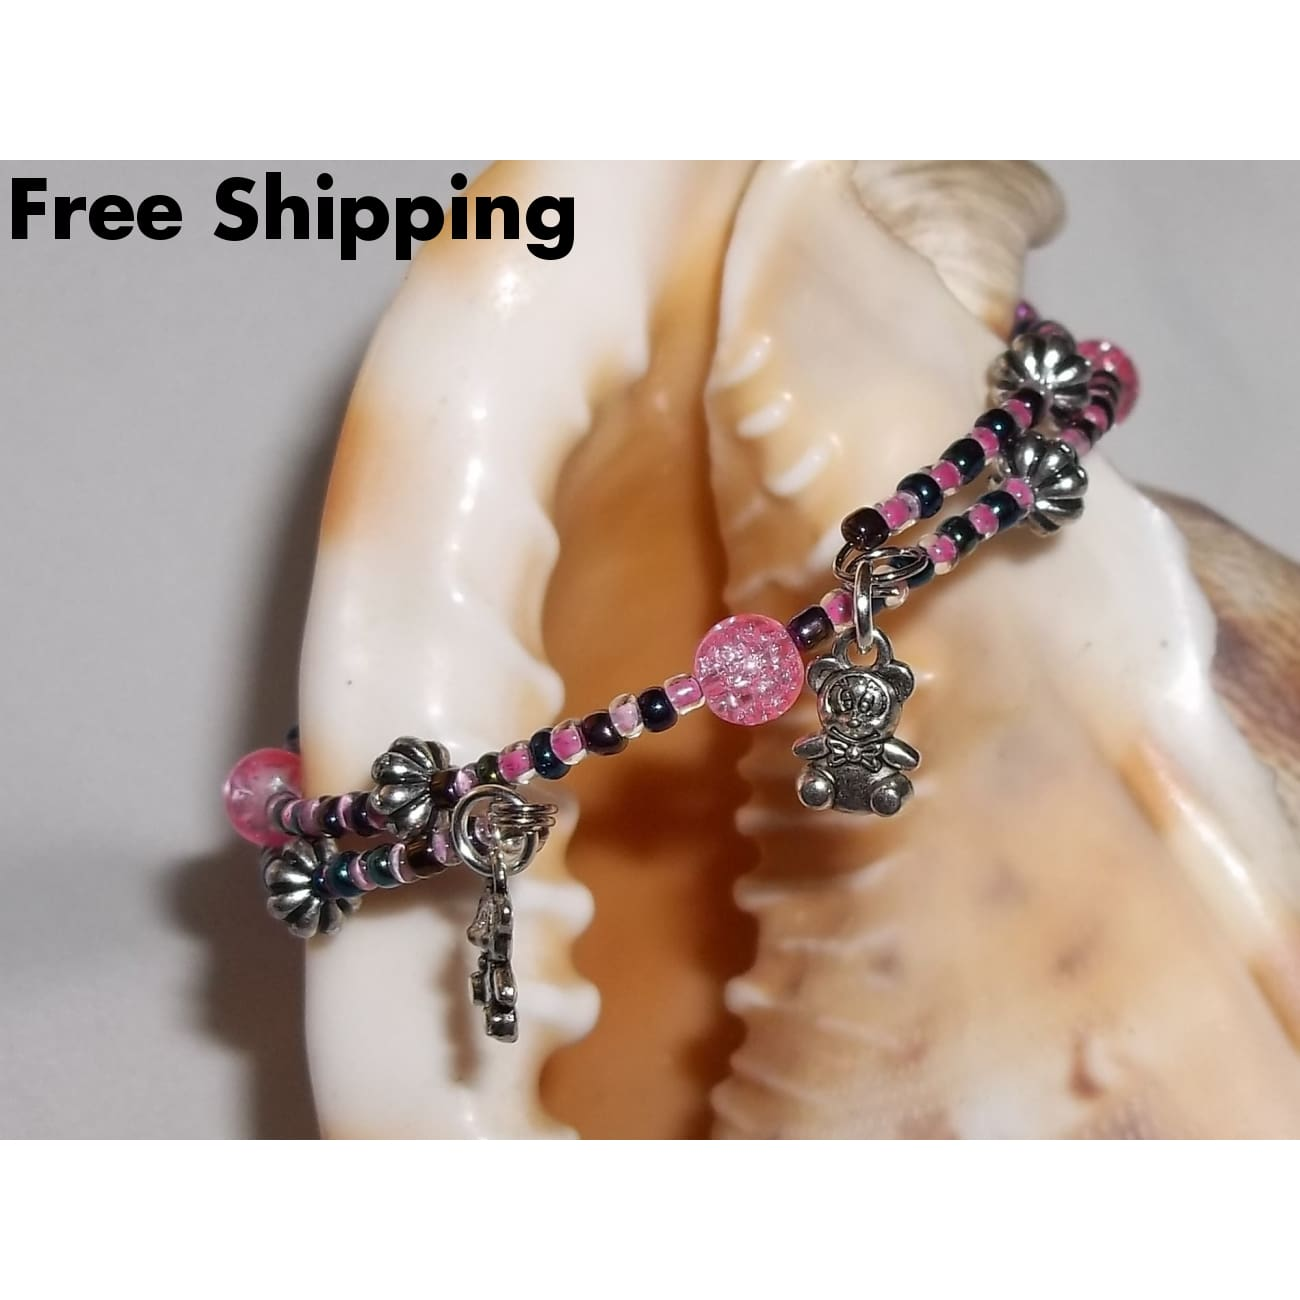 Teddy Bears Pink And Metallic Blue Silver Beaded Hand Crafted Charm Bangle Bracelet - Bracelets